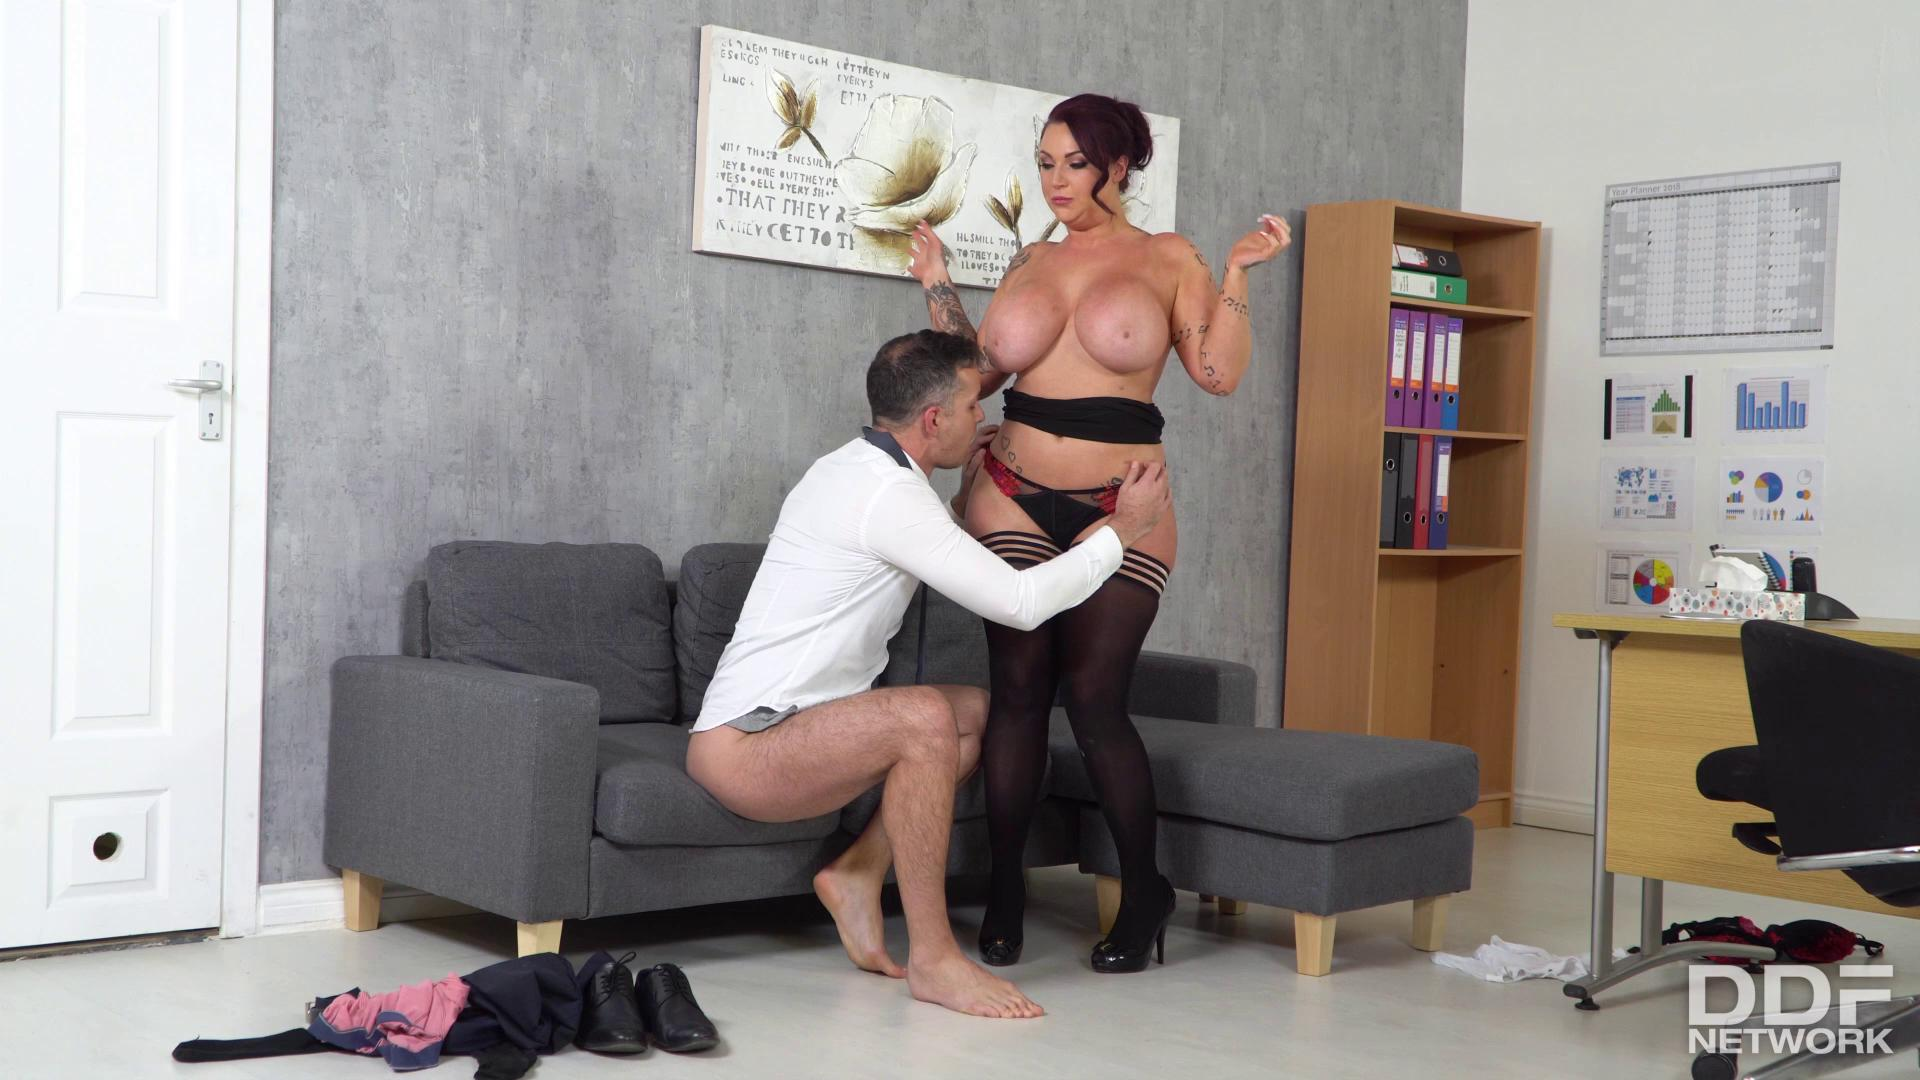 DDFBusty – Harmony Reigns